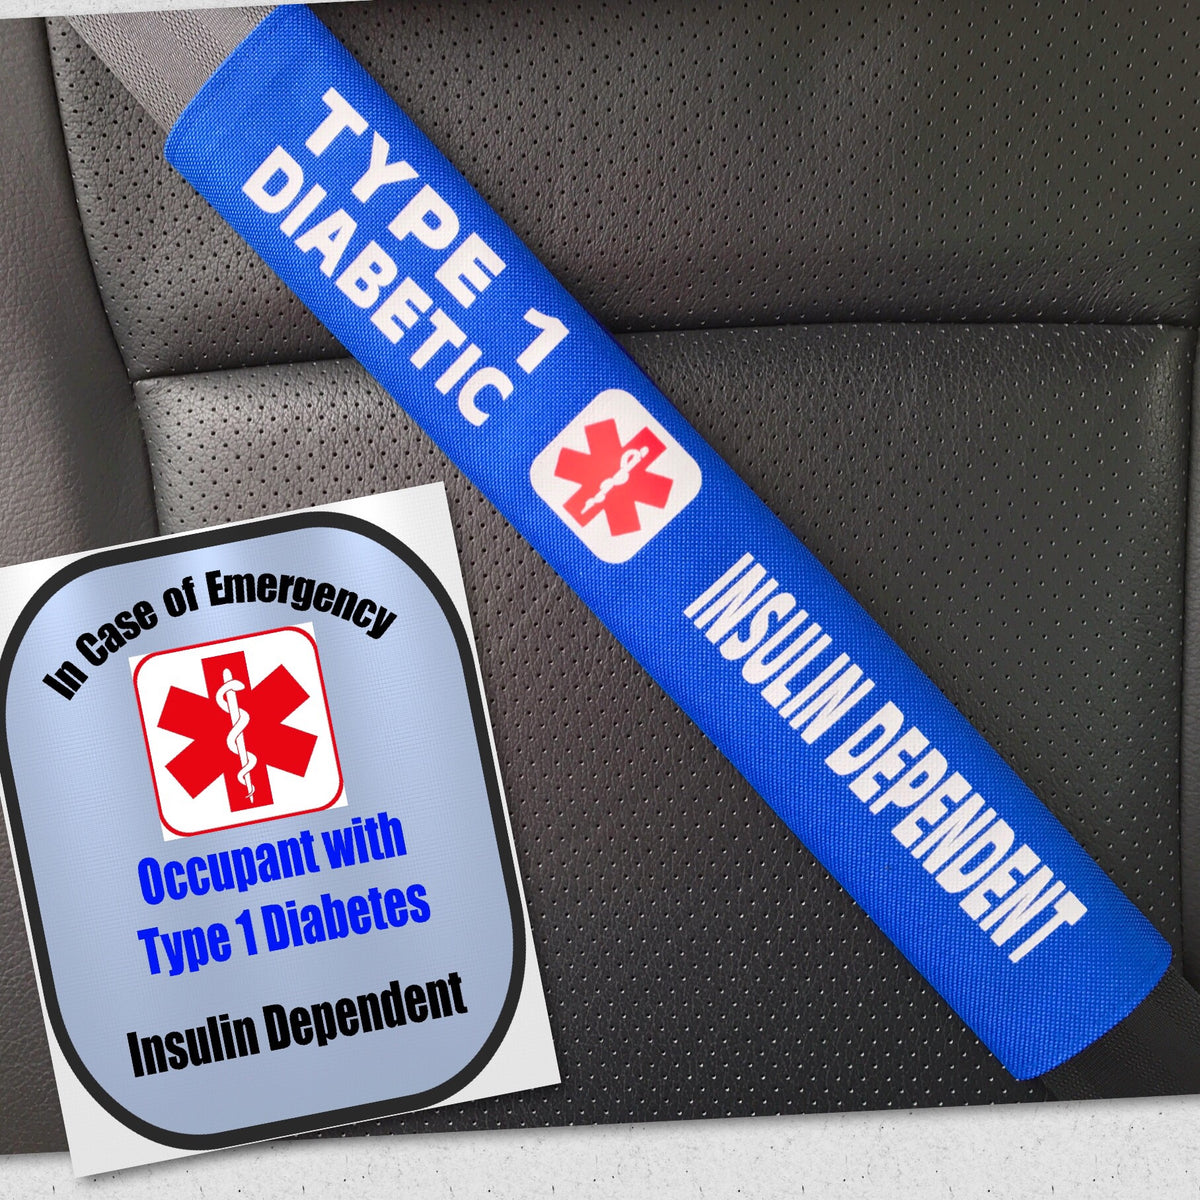 Type 1 diabetic seat belt cover window decal set medical alert safety awareness products